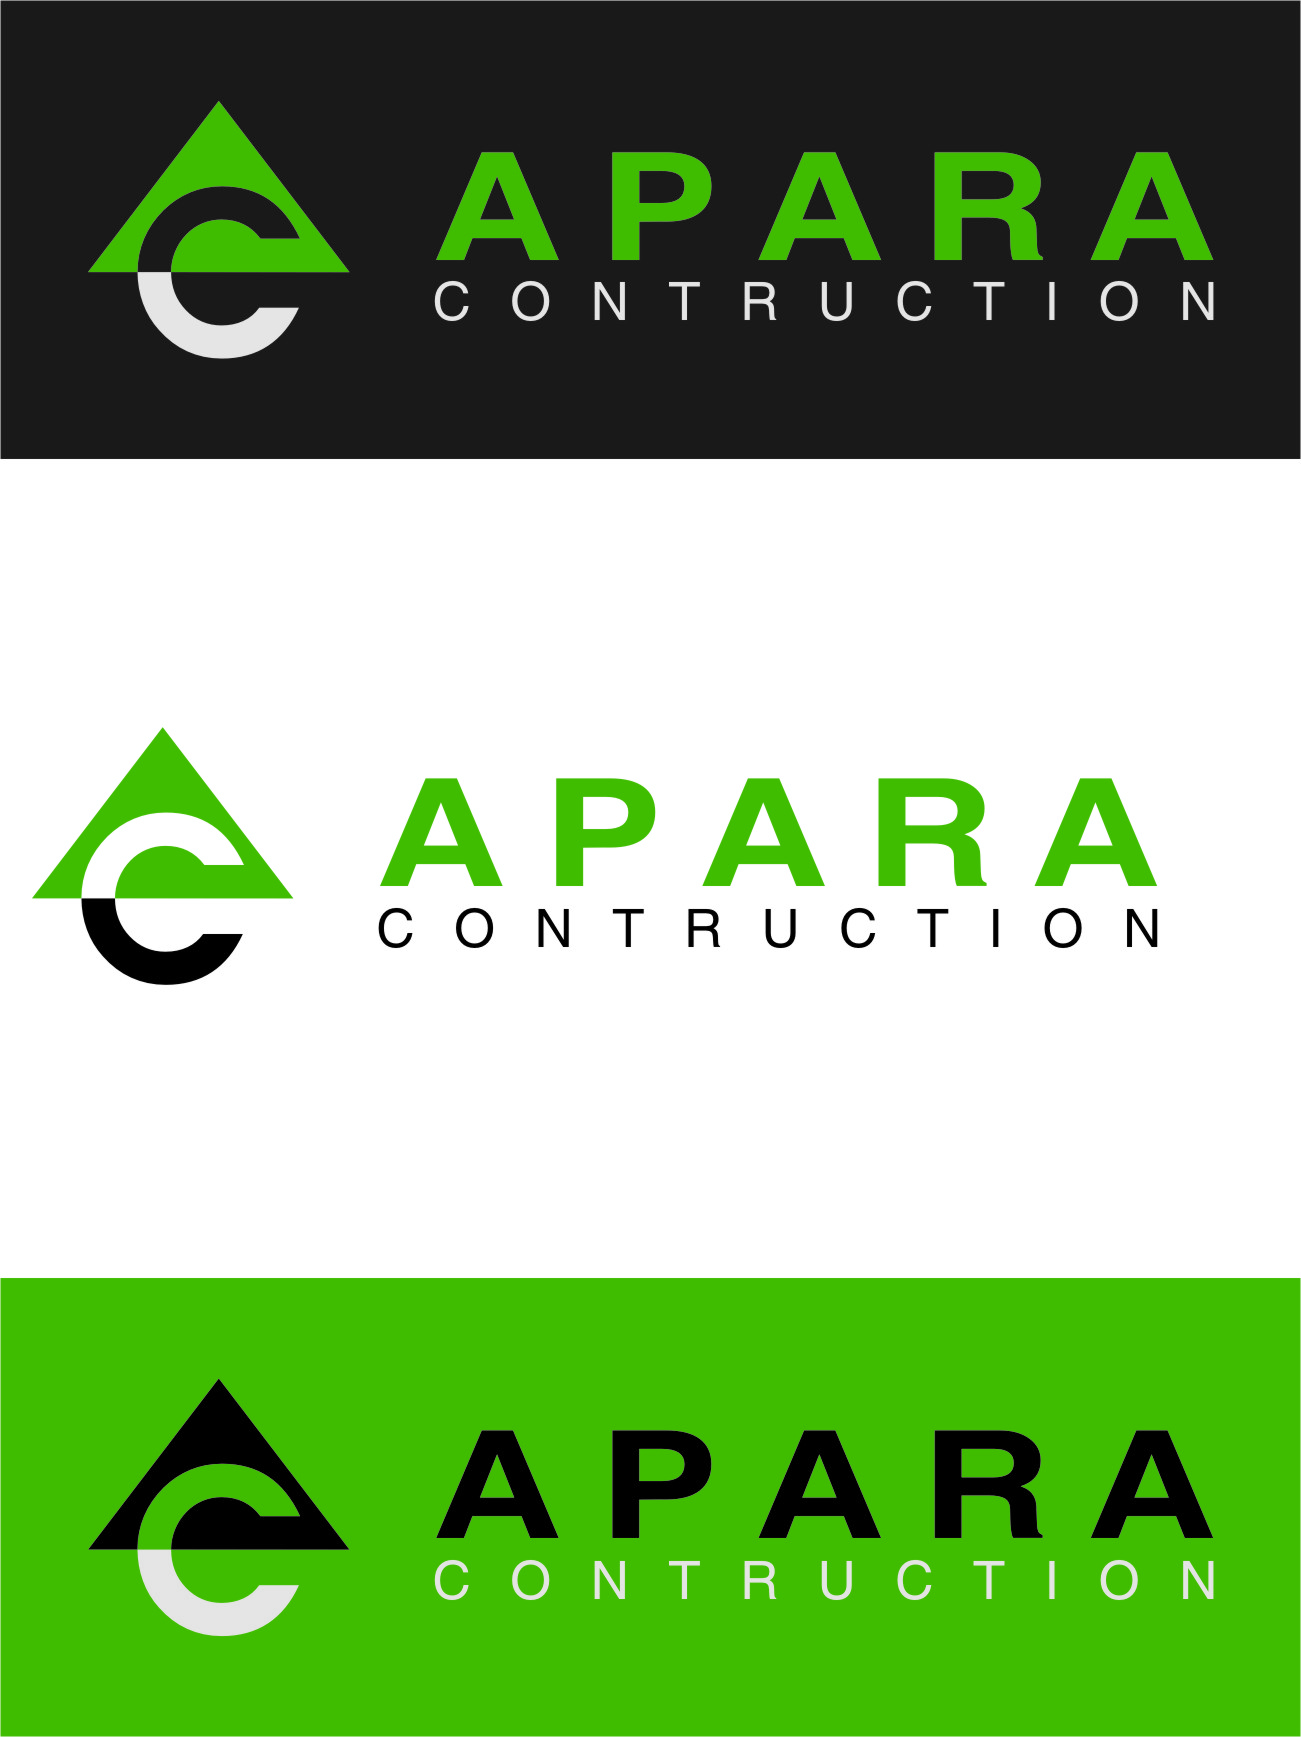 Logo Design by Ngepet_art - Entry No. 31 in the Logo Design Contest Apara Construction Logo Design.